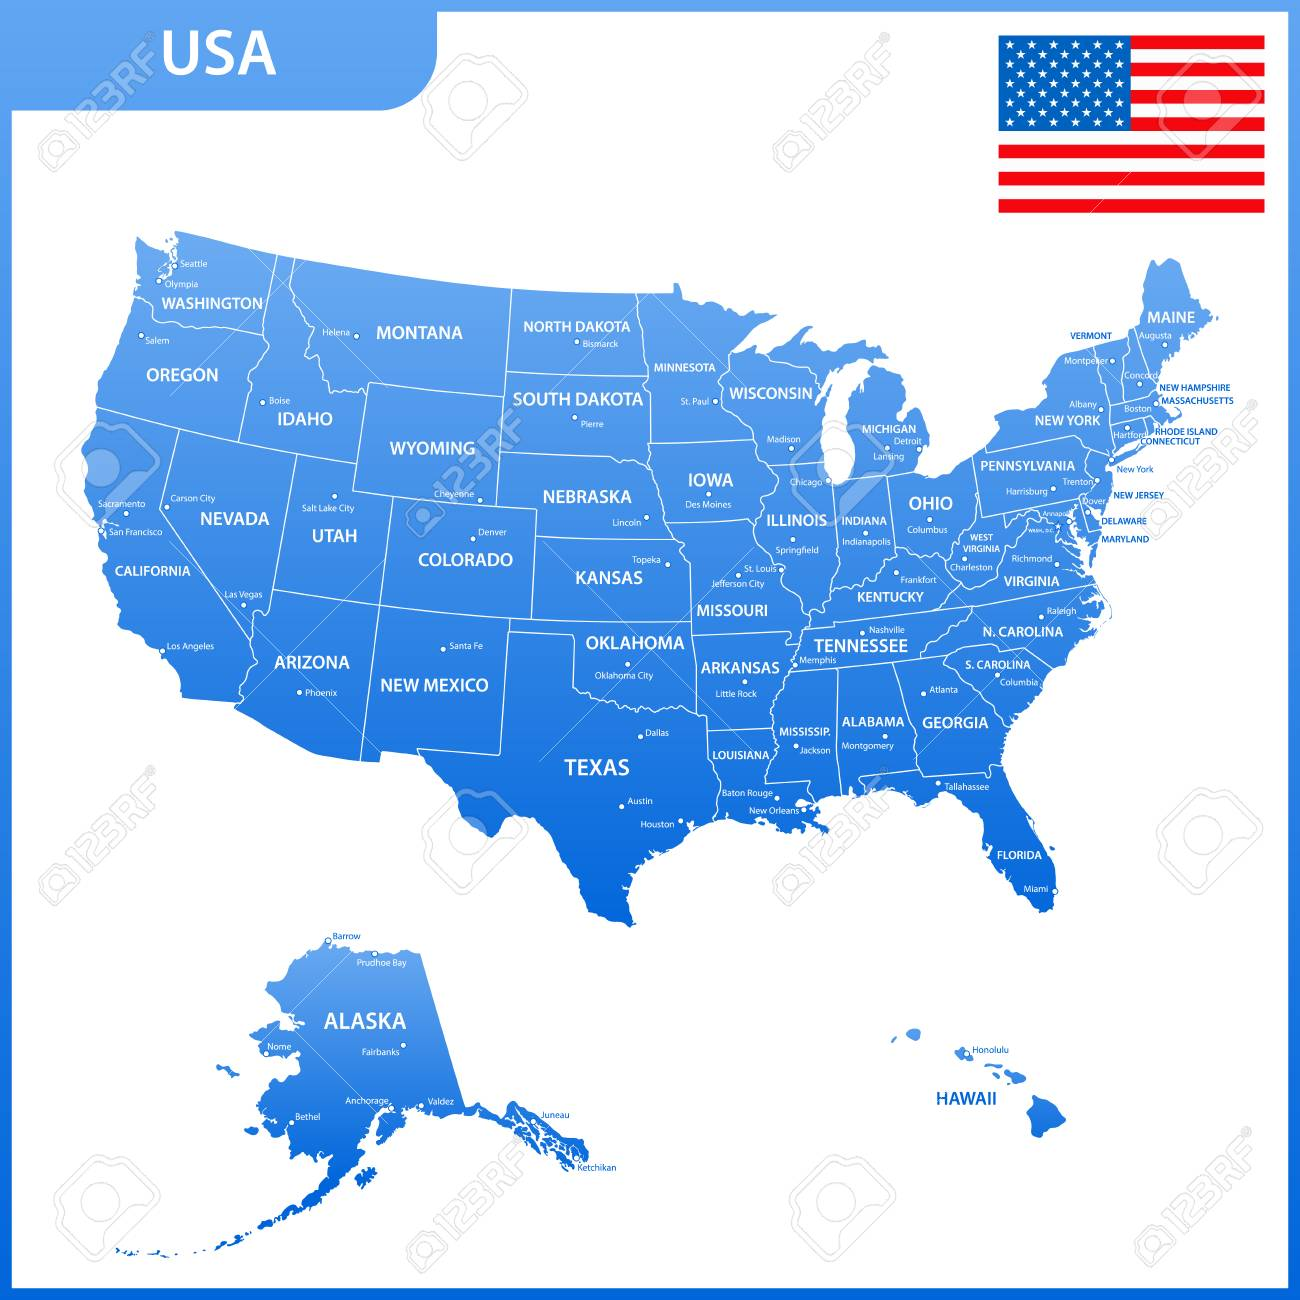 The Detailed Map Of The USA With Regions Or States And Cities ...